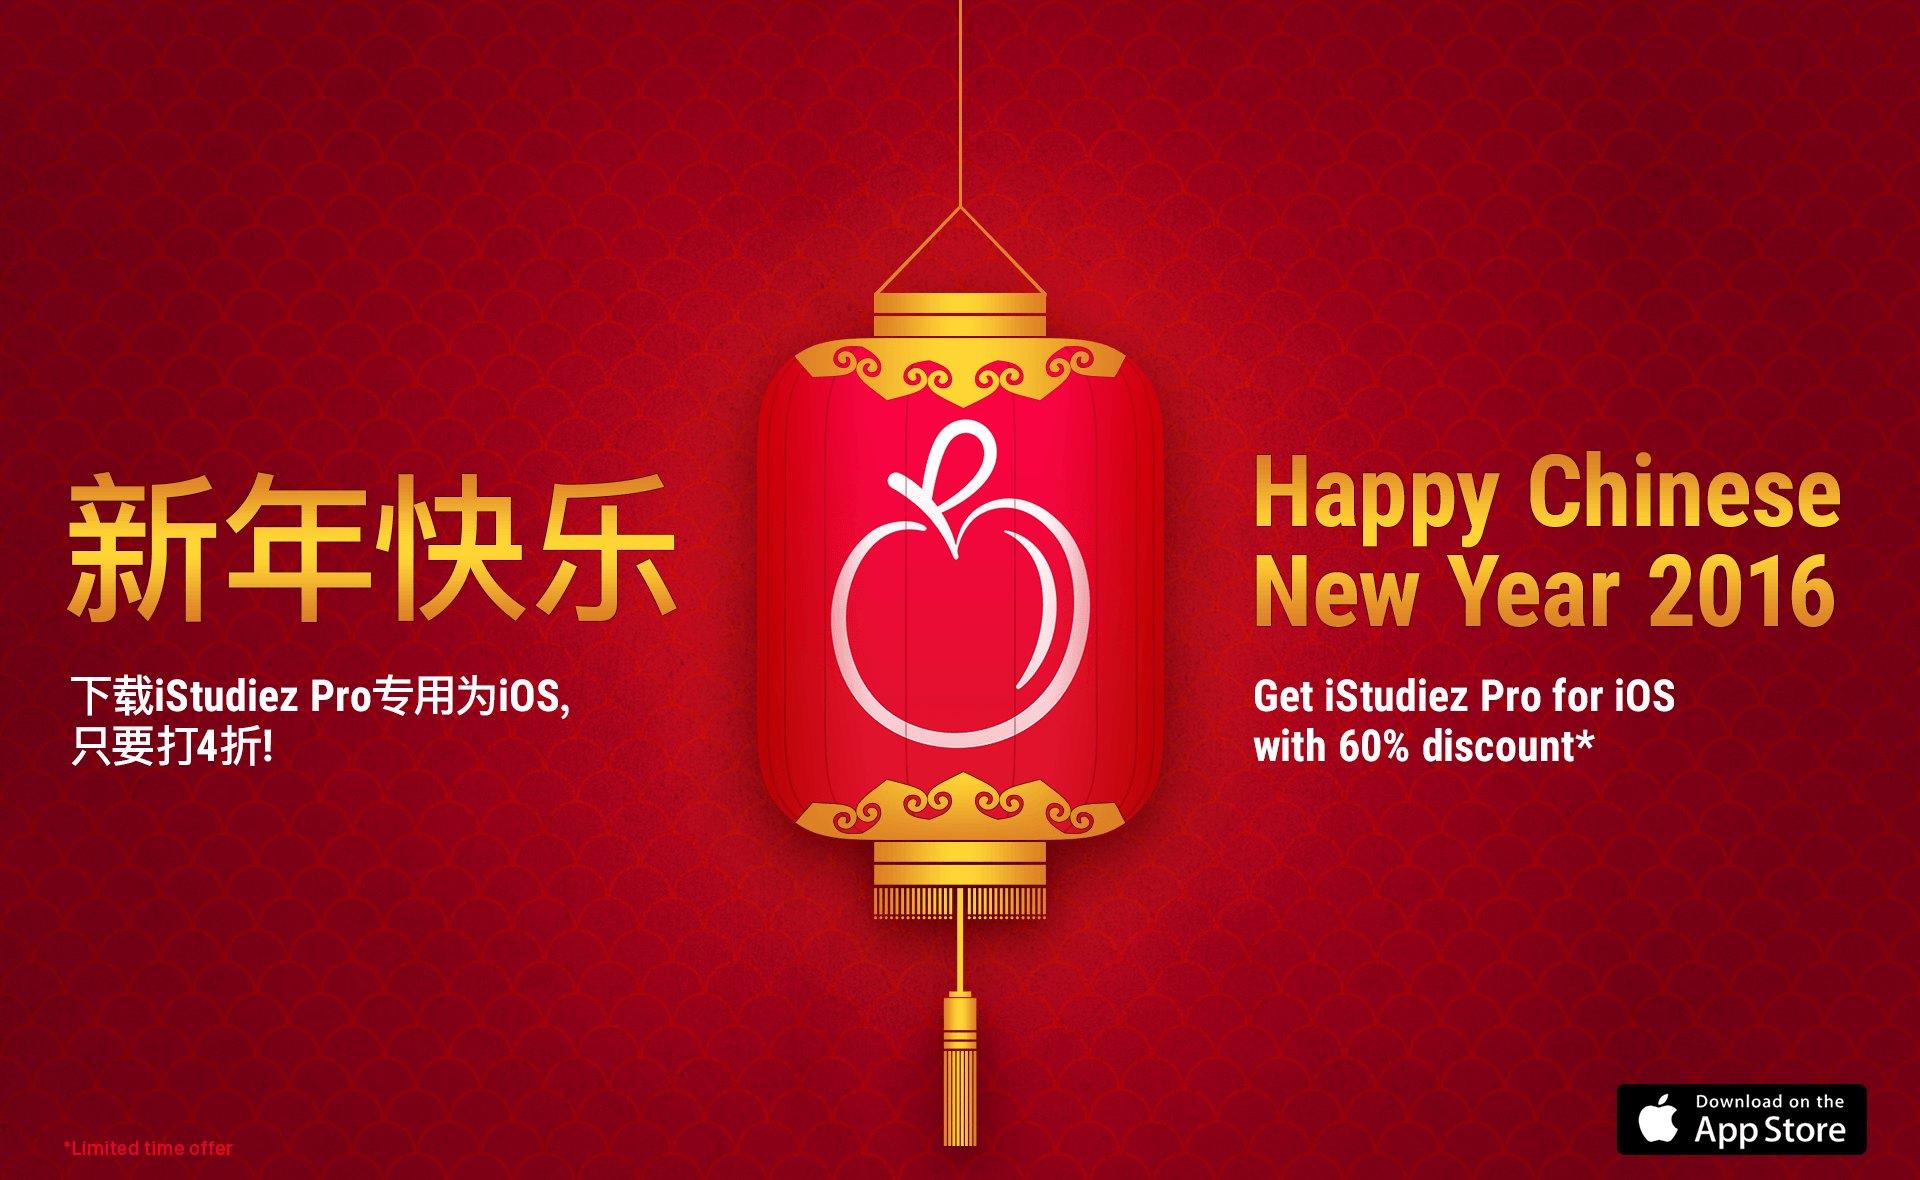 the origin and history of chinese new year Where did the tradition of kissing on new year's come from historians date this practice back to ancient roman, english and german traditions.